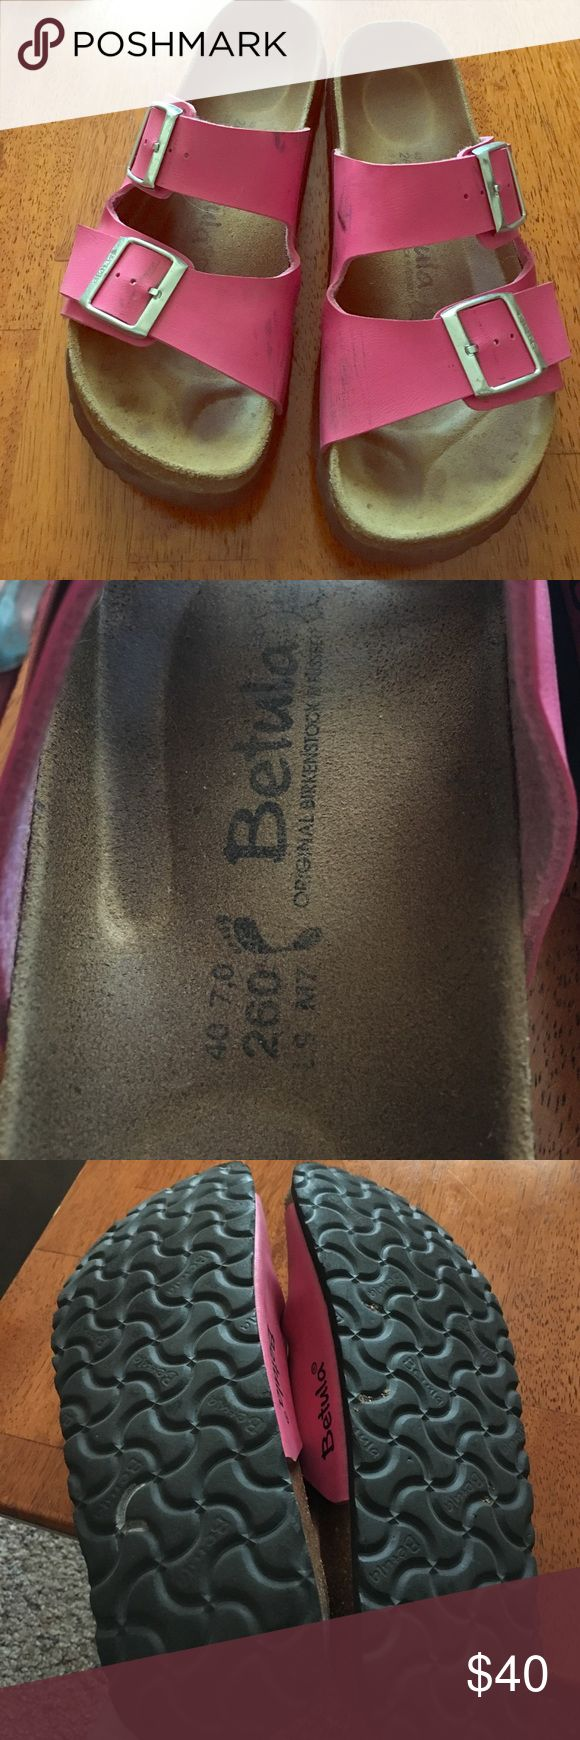 Birkenstock Betula Sandals Betula by Birkenstock sandals, worn with love! Pink leather straps in great condition. Some scuff marks on leather but so much wear left. Birkenstock Shoes Sandals